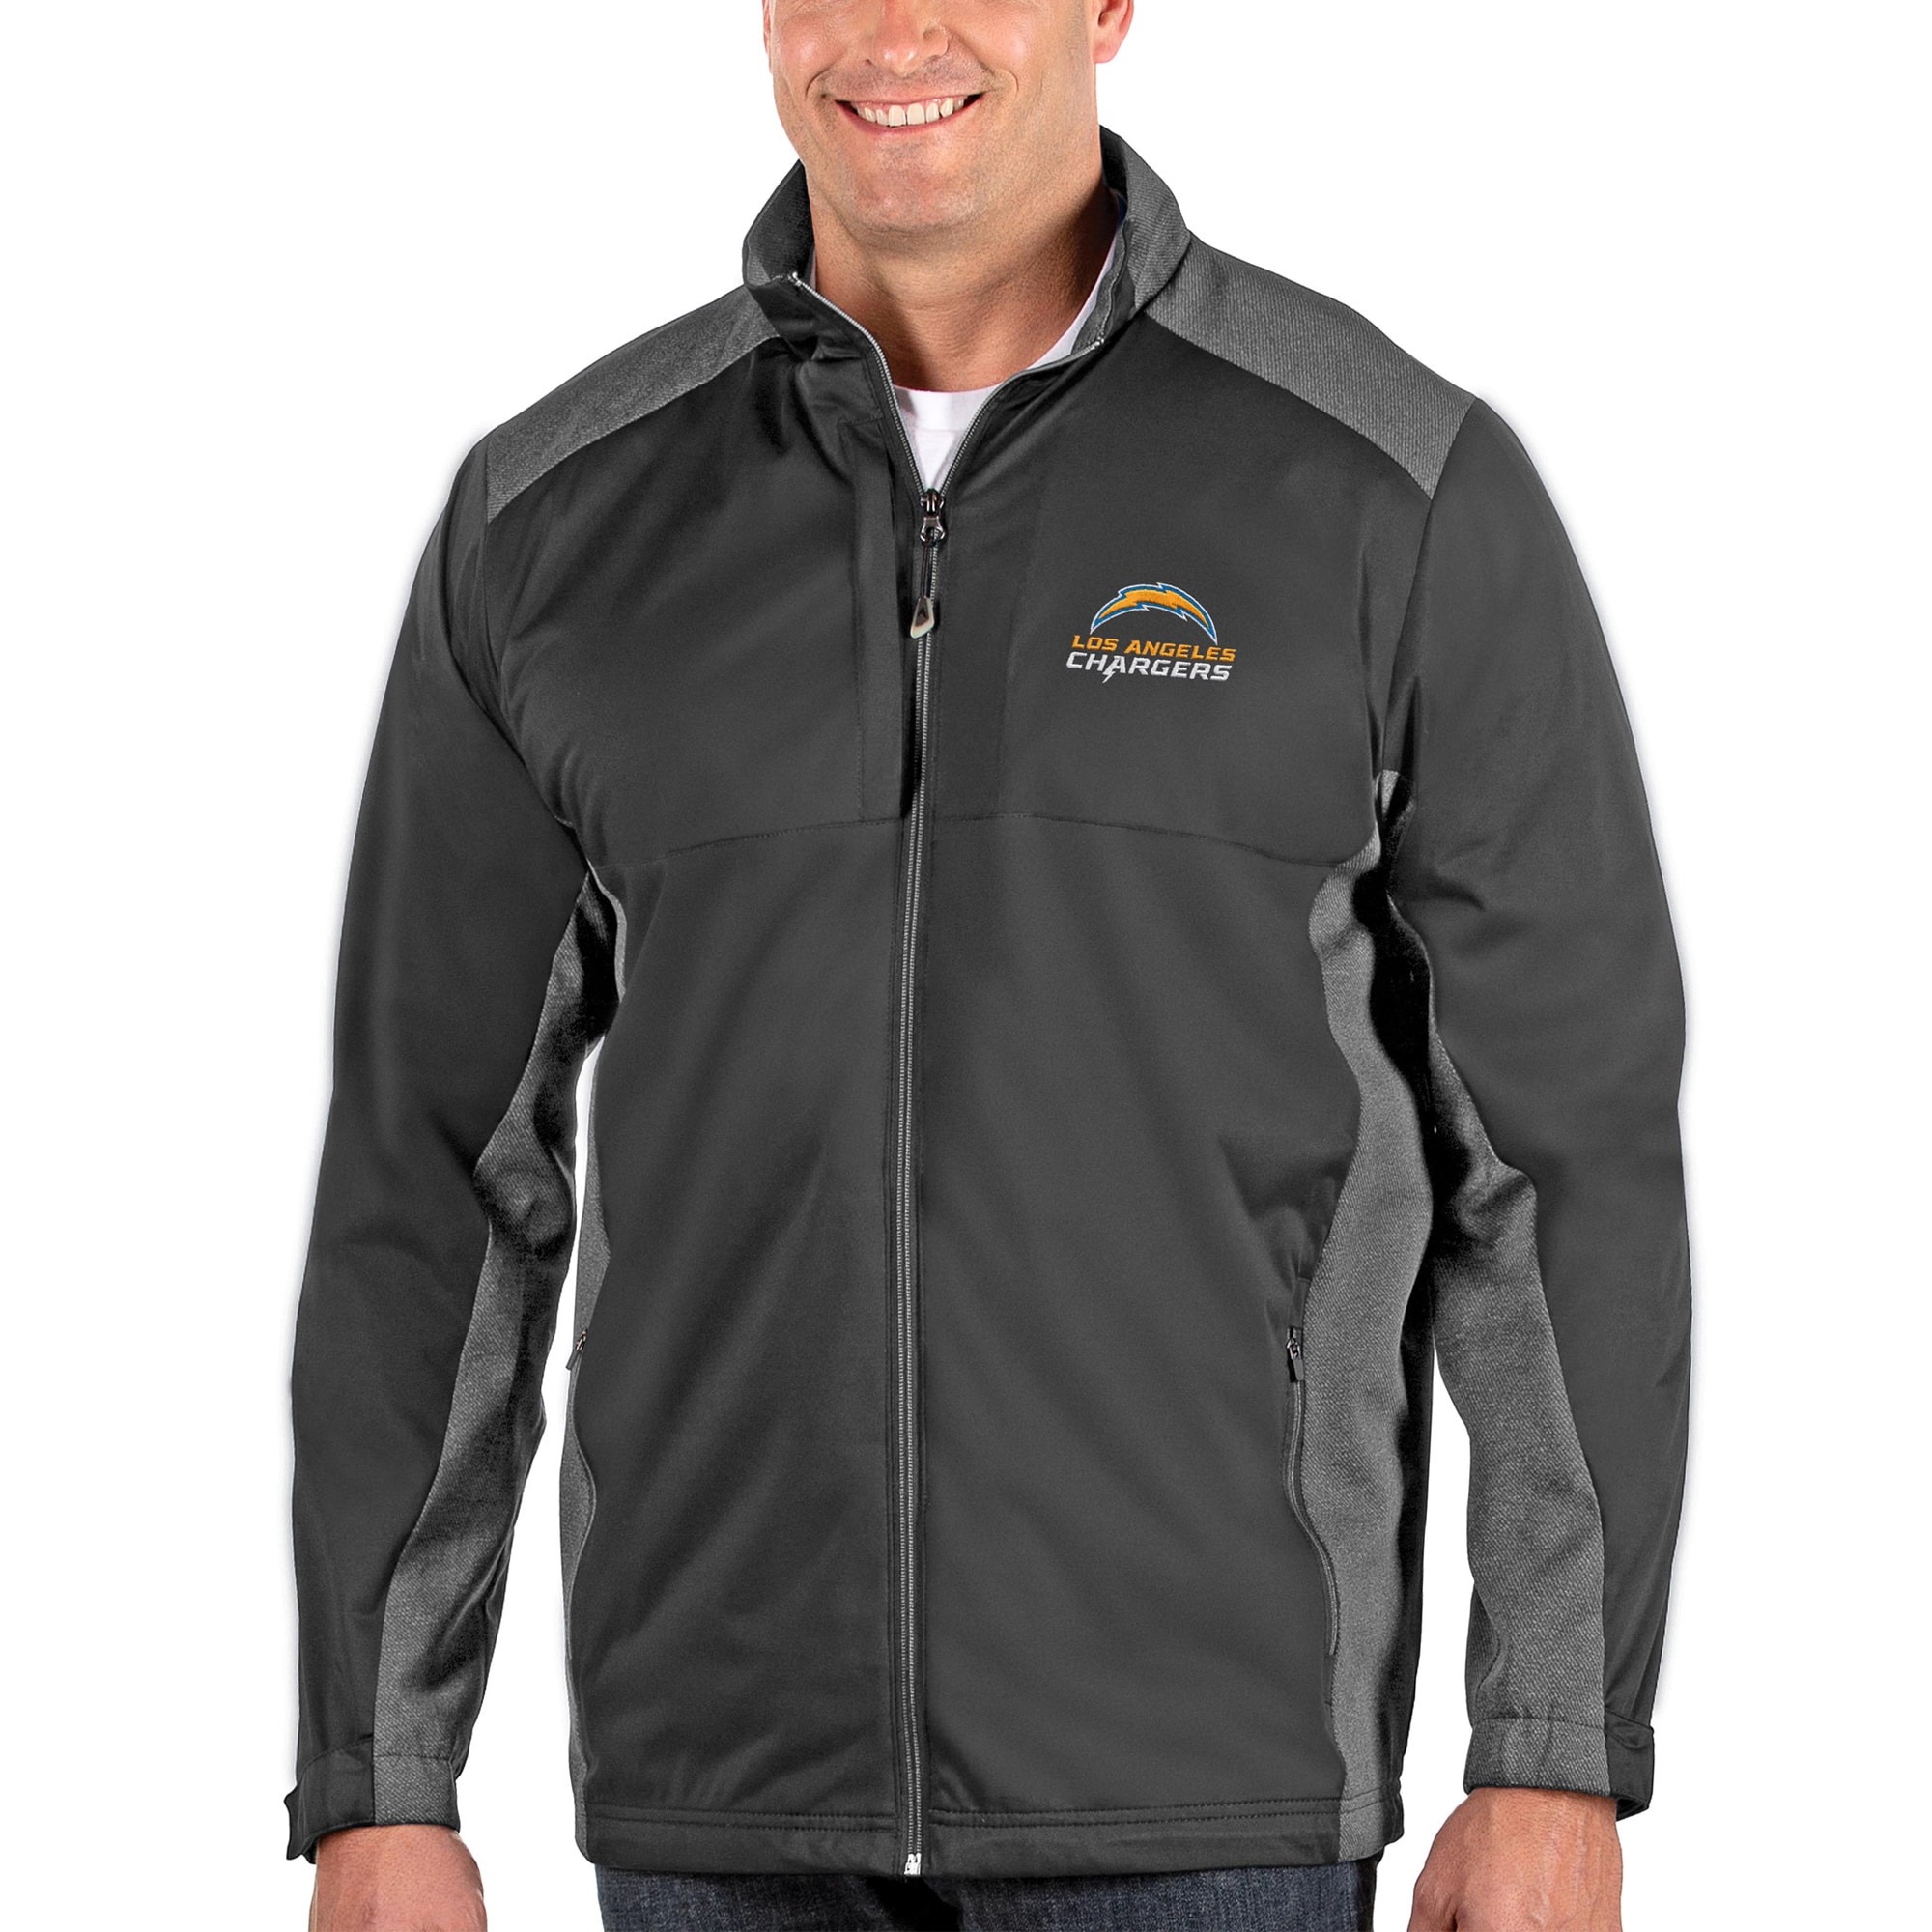 Los Angeles Chargers Antigua Big & Tall Revolve Full-Zip Jacket - Heather Charcoal